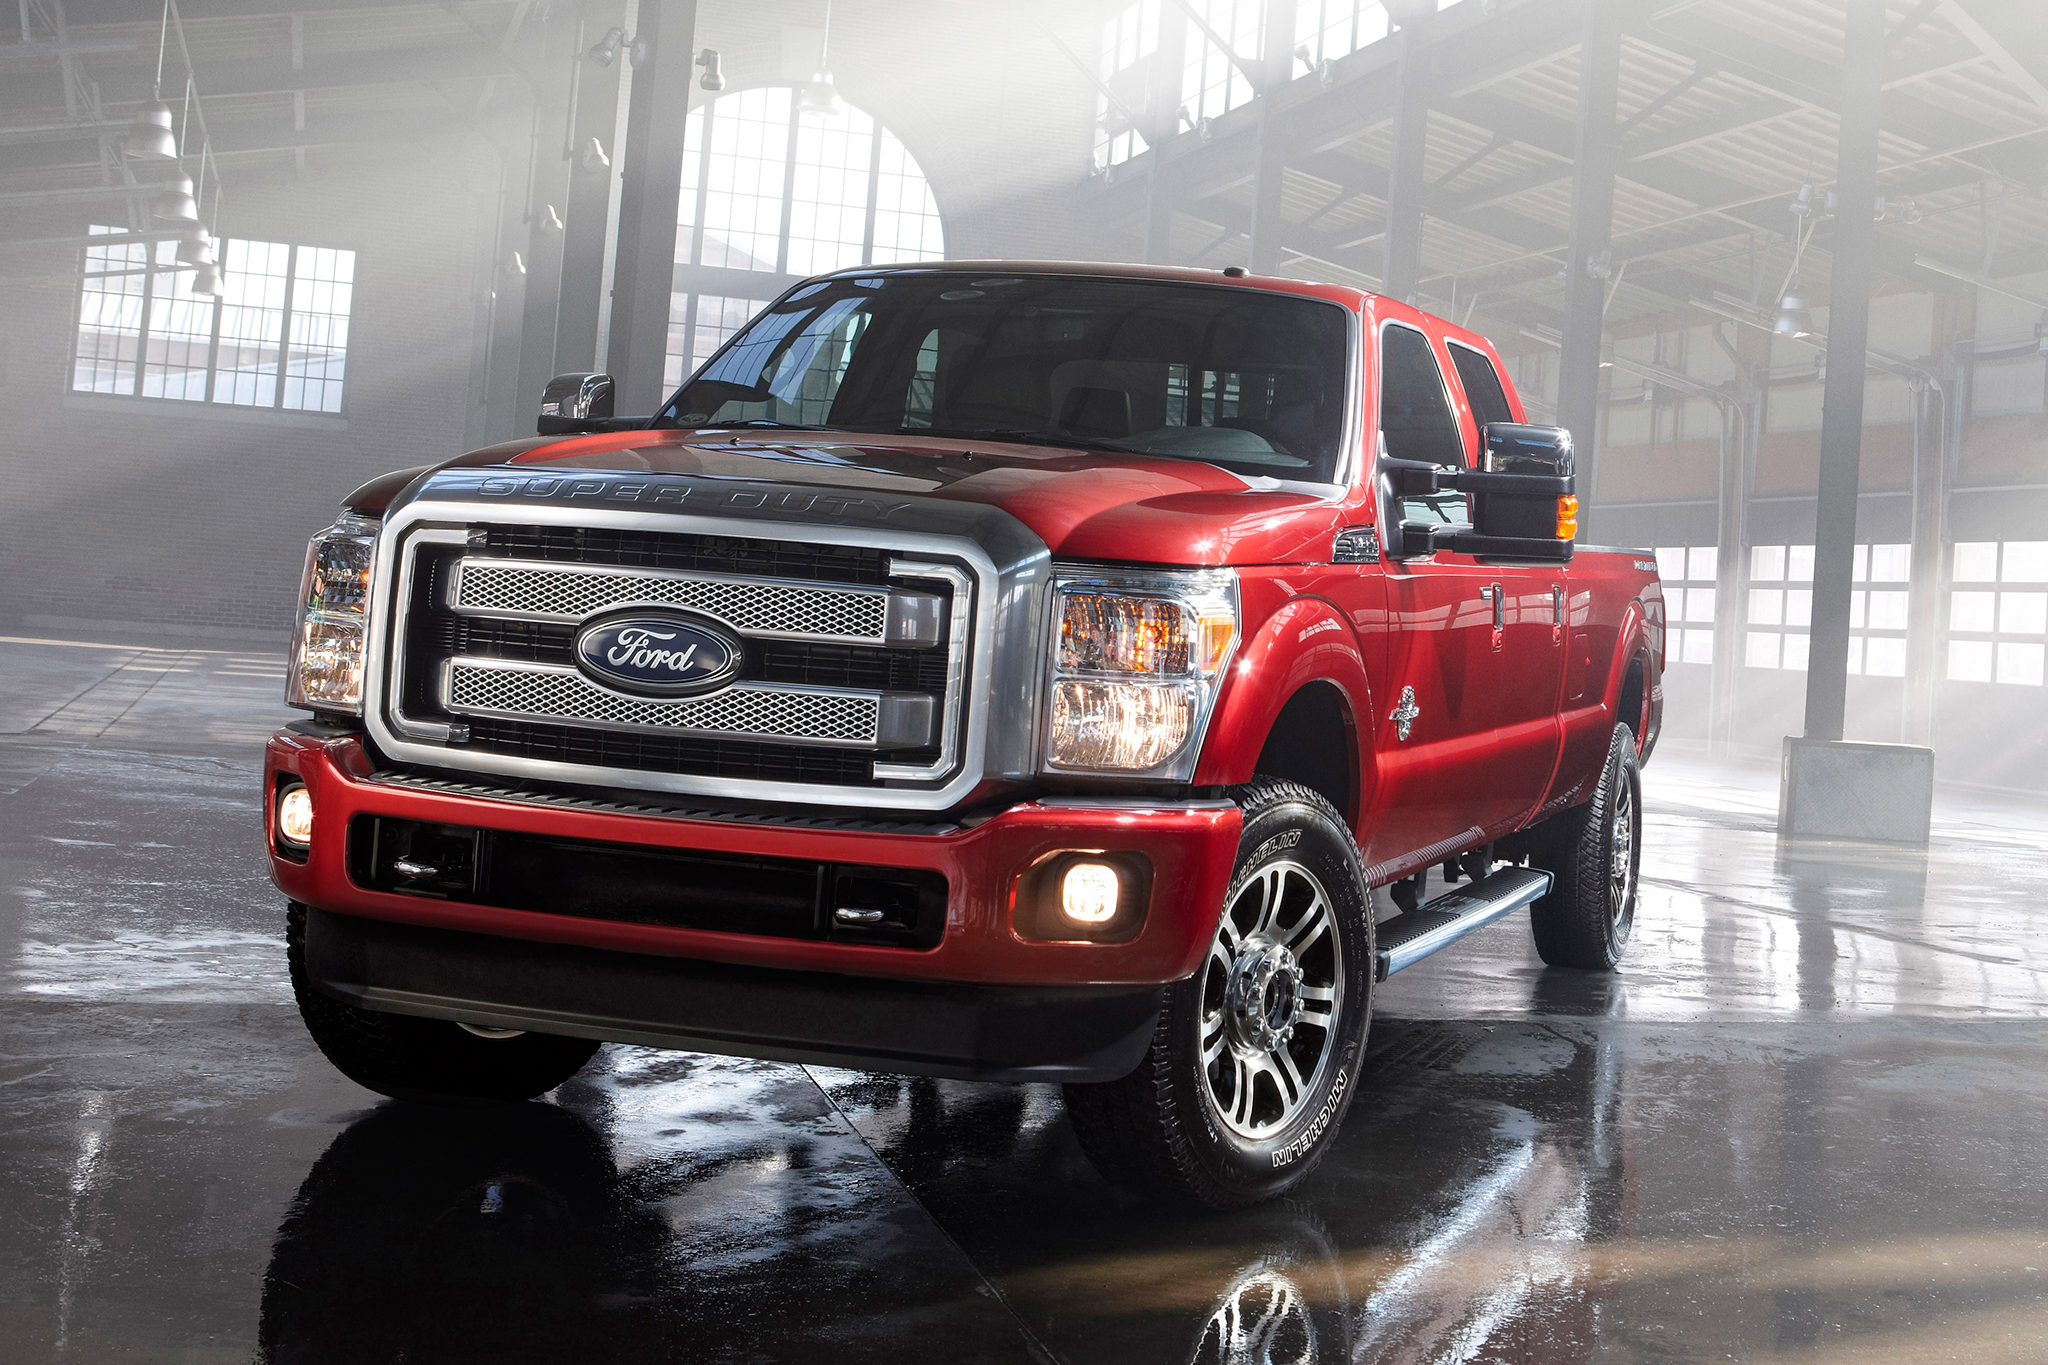 Article Top 10 Best Selling Cars Of January 2014 Ford F Series 250 Platinum Black Overview